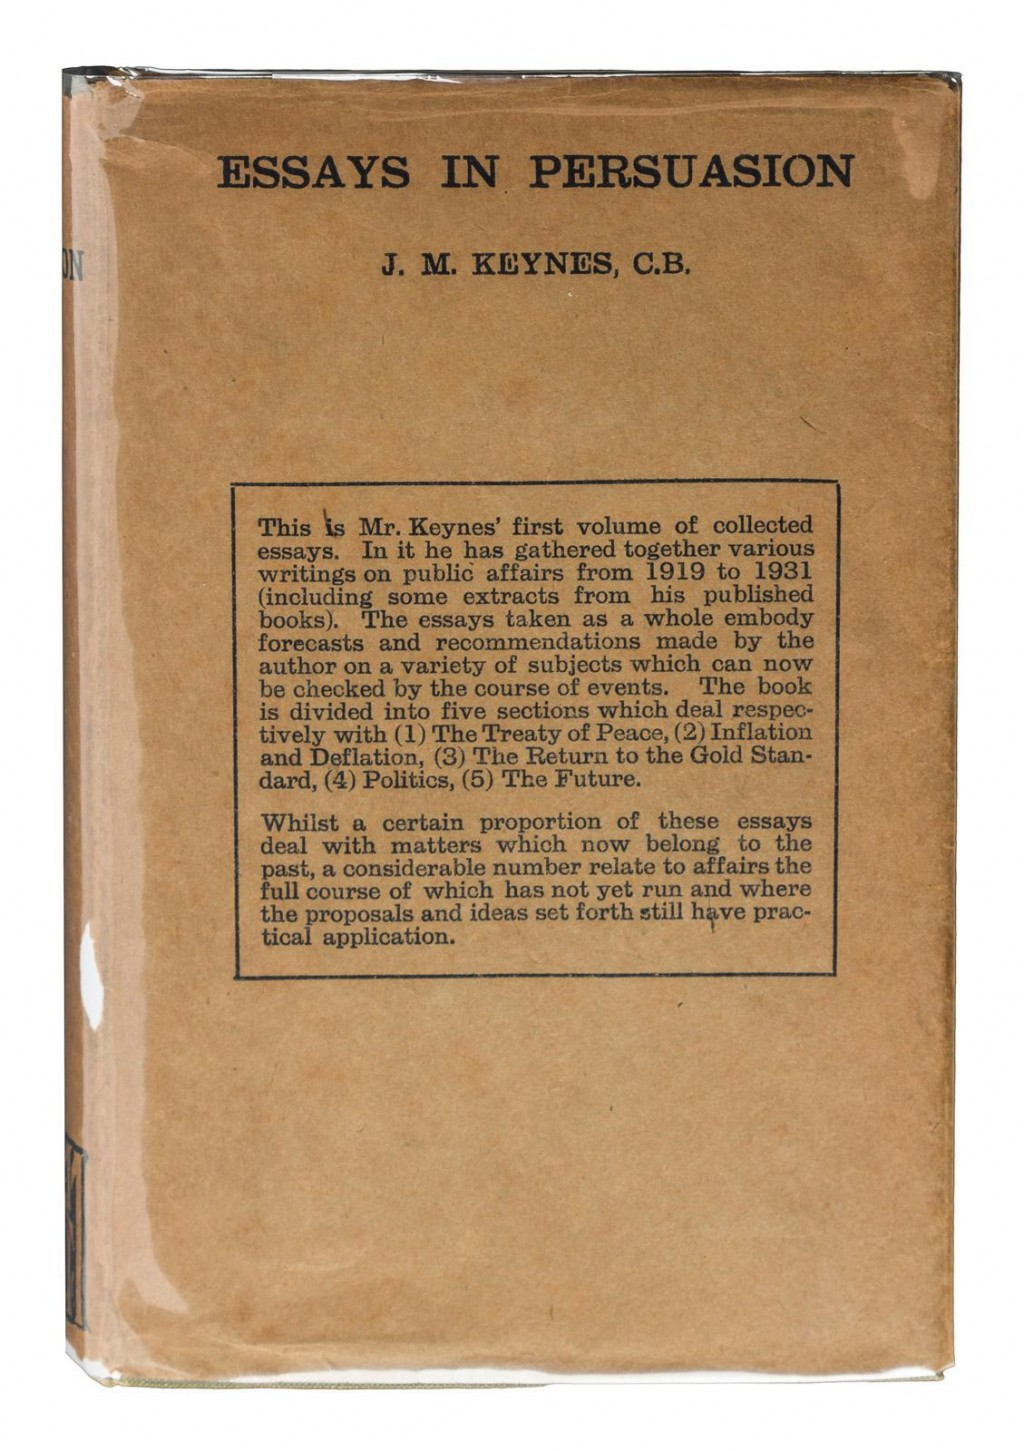 015 237551 0 Essay Example Essays In Remarkable Persuasion Keynes 1931 Wikipedia Summary Large